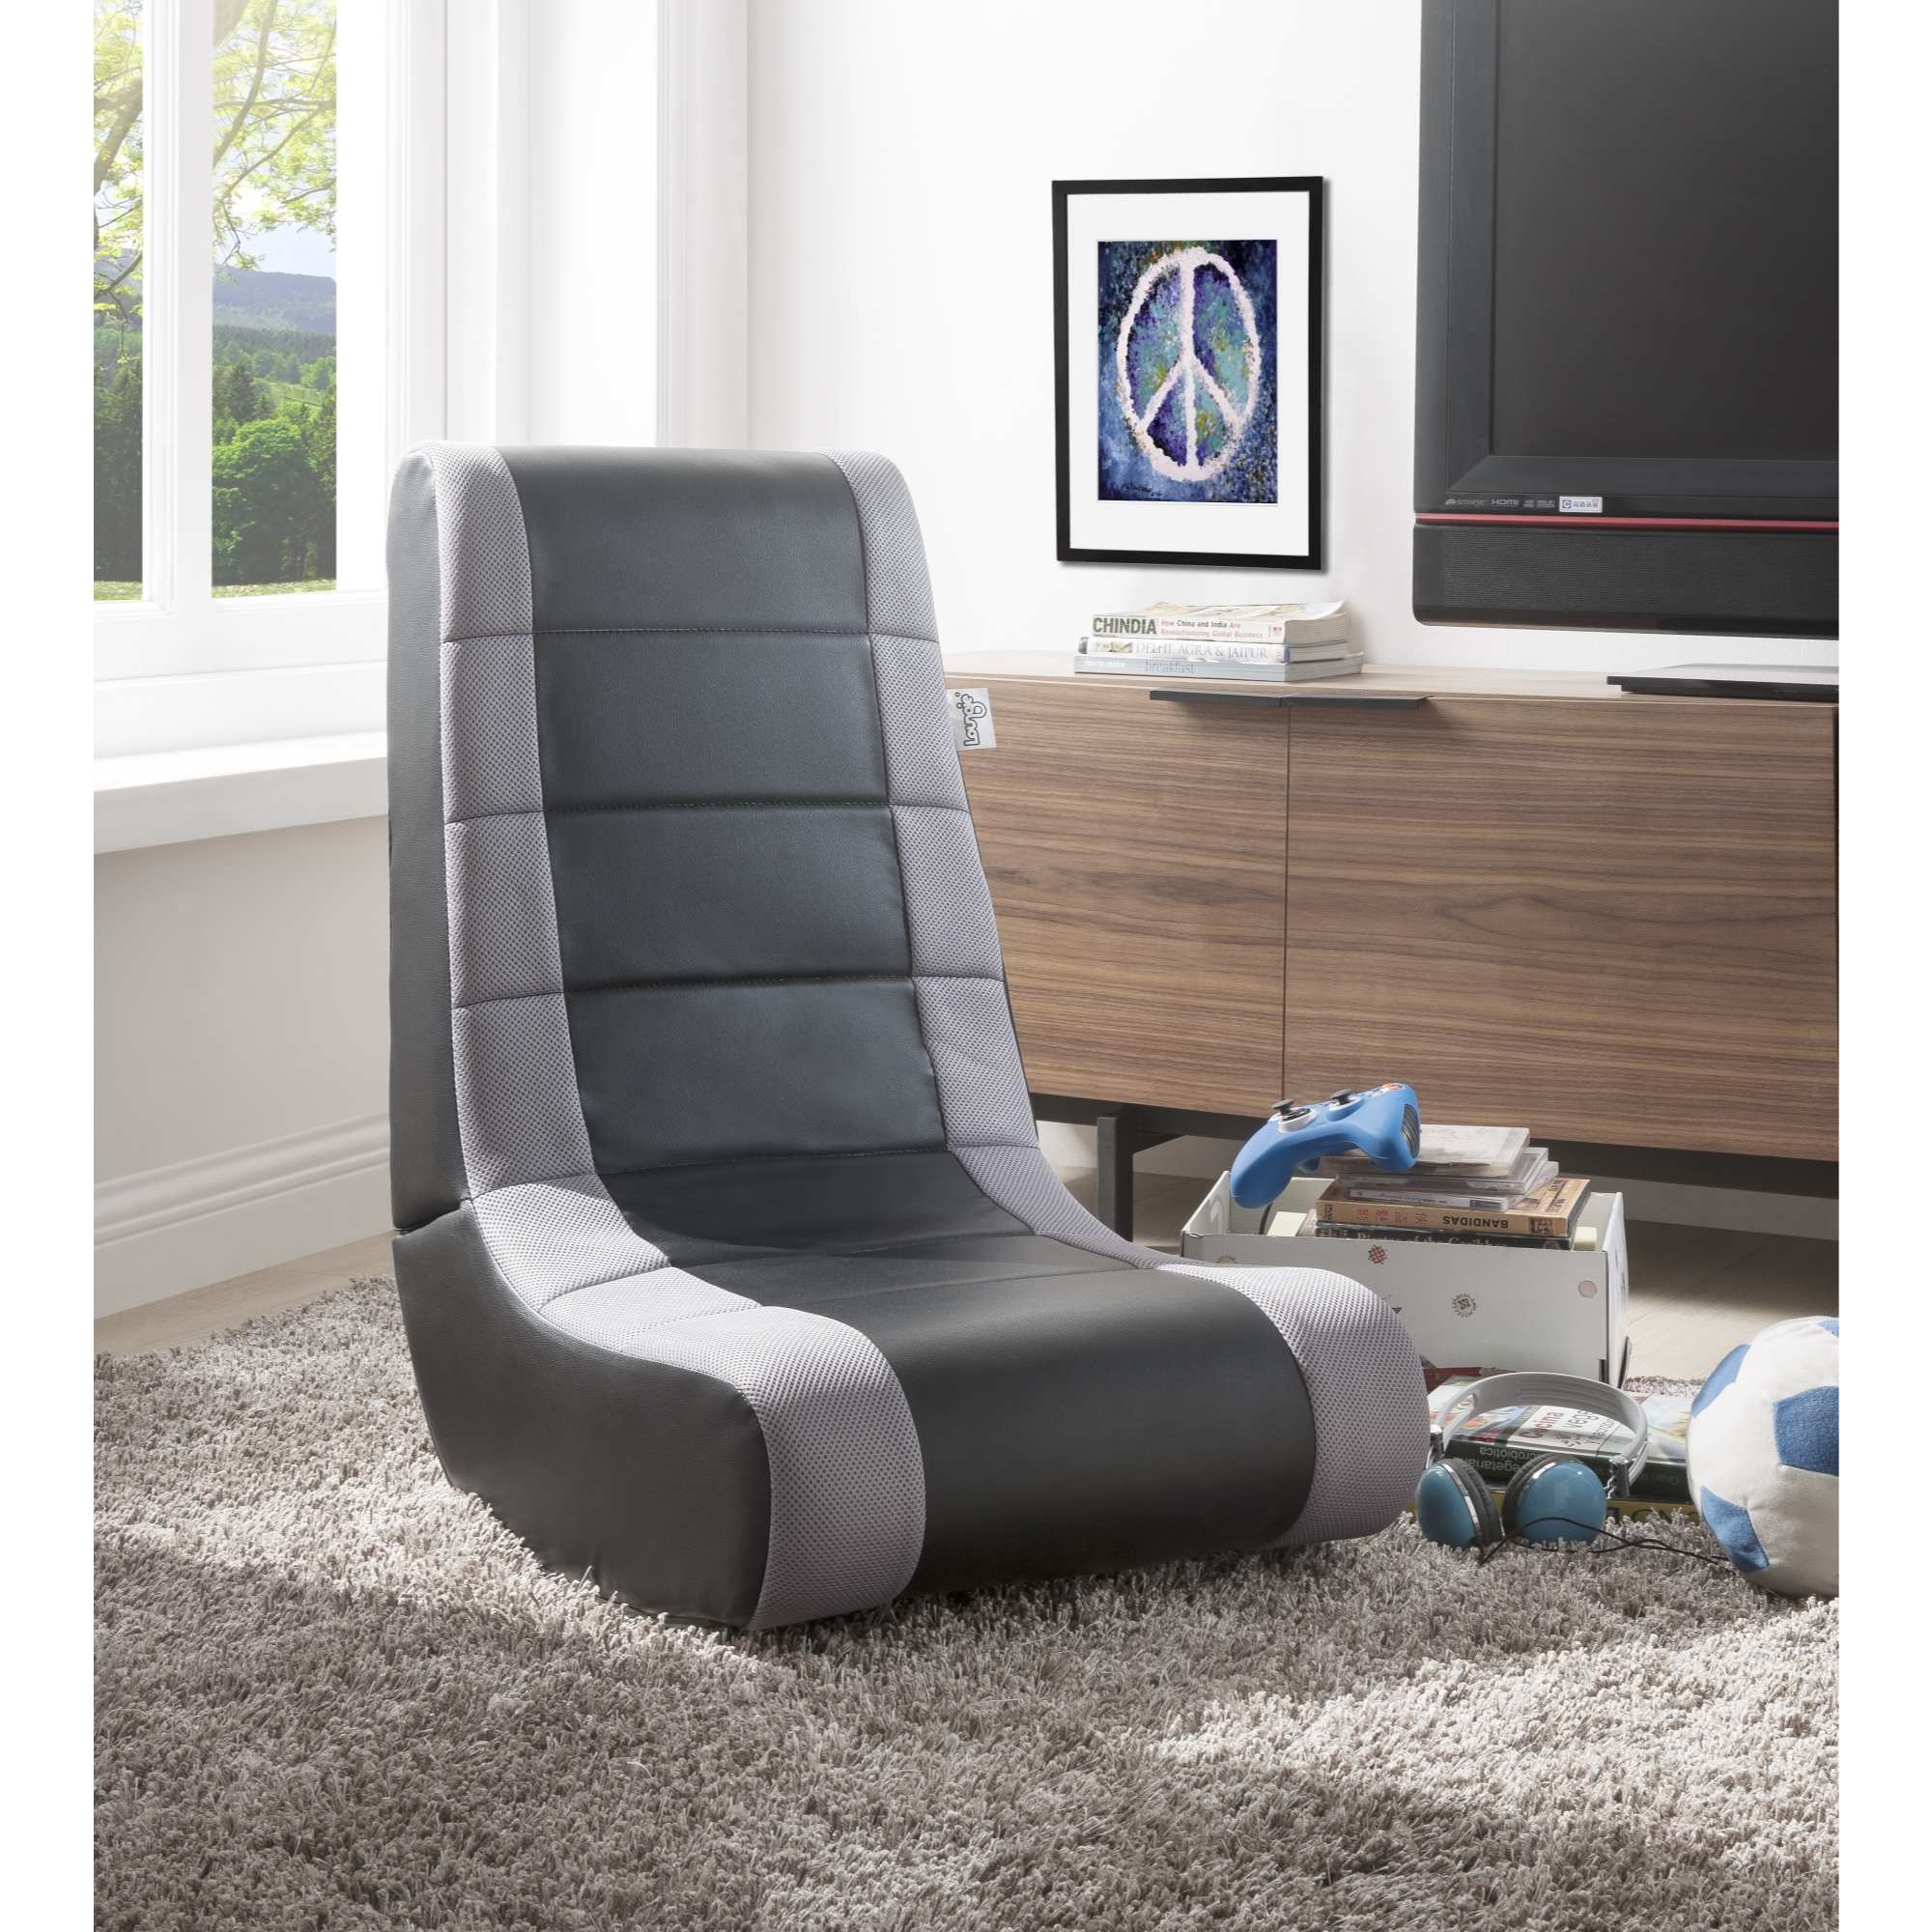 Loungie RockMe PU Leather Gaming Chair - Black & Silver | Foldable | Ergonomic | Kids, Teens, Adults